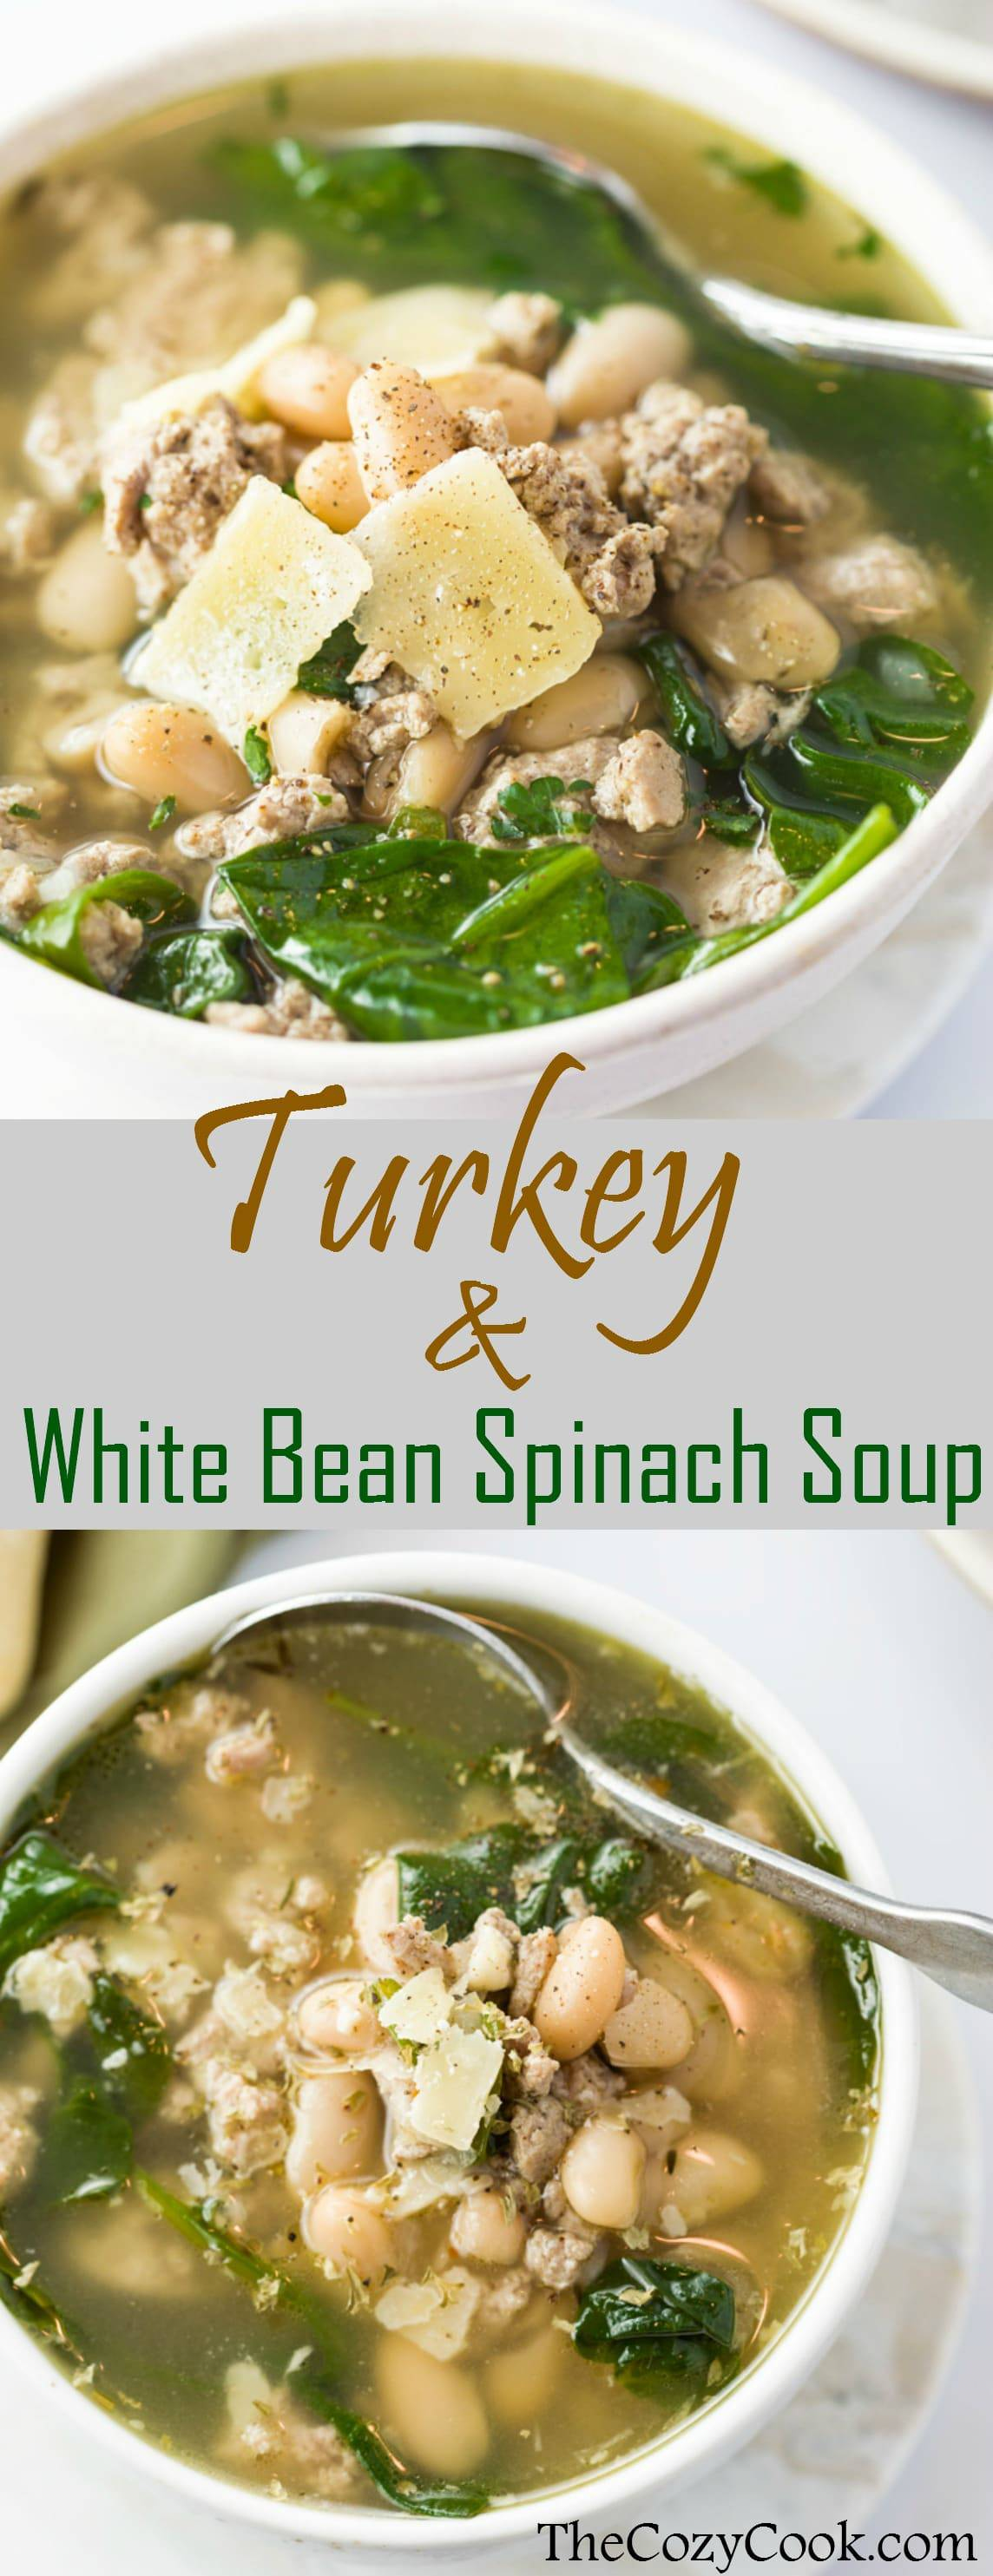 Ground Turkey simmered in savory chicken broth with white beans, spinach, and simple seasonings. A healthy, protein-packed meal that will leave you feeling comforted and satisfied!| The Cozy Cook | #soup #turkey #healthy #broth #whitebeans #protein